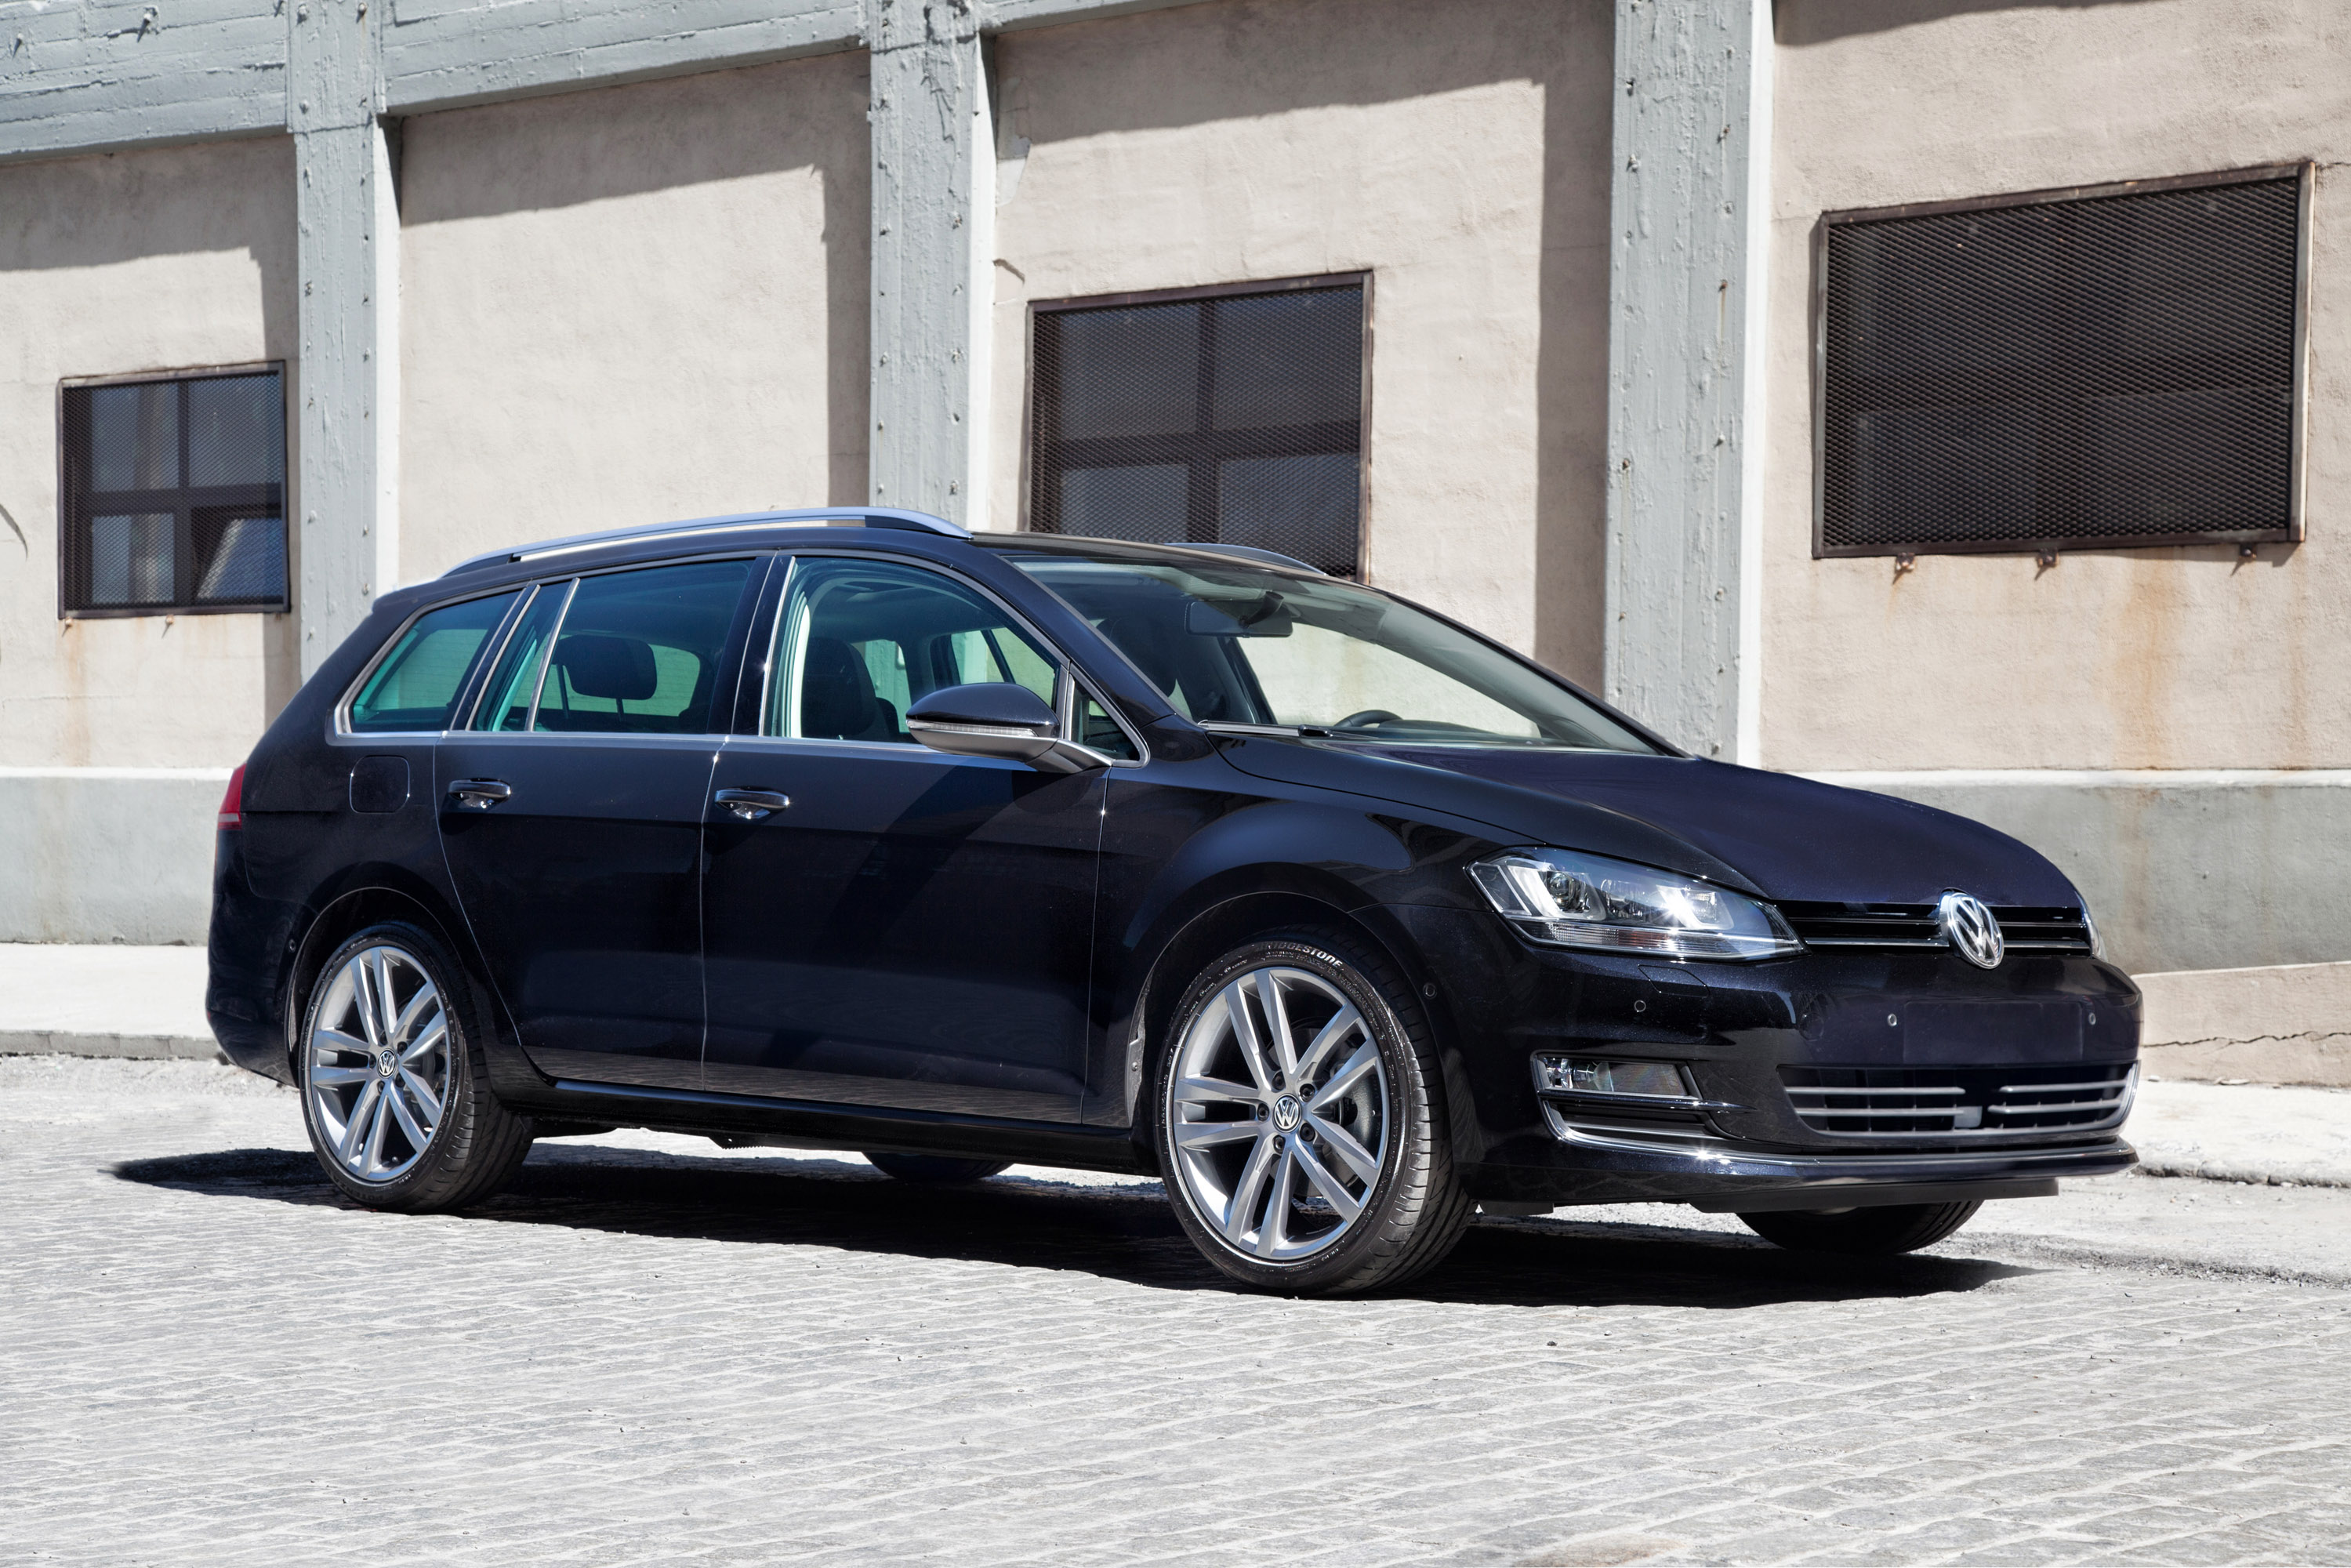 2015 volkswagen golf vii sportwagen us premiere. Black Bedroom Furniture Sets. Home Design Ideas